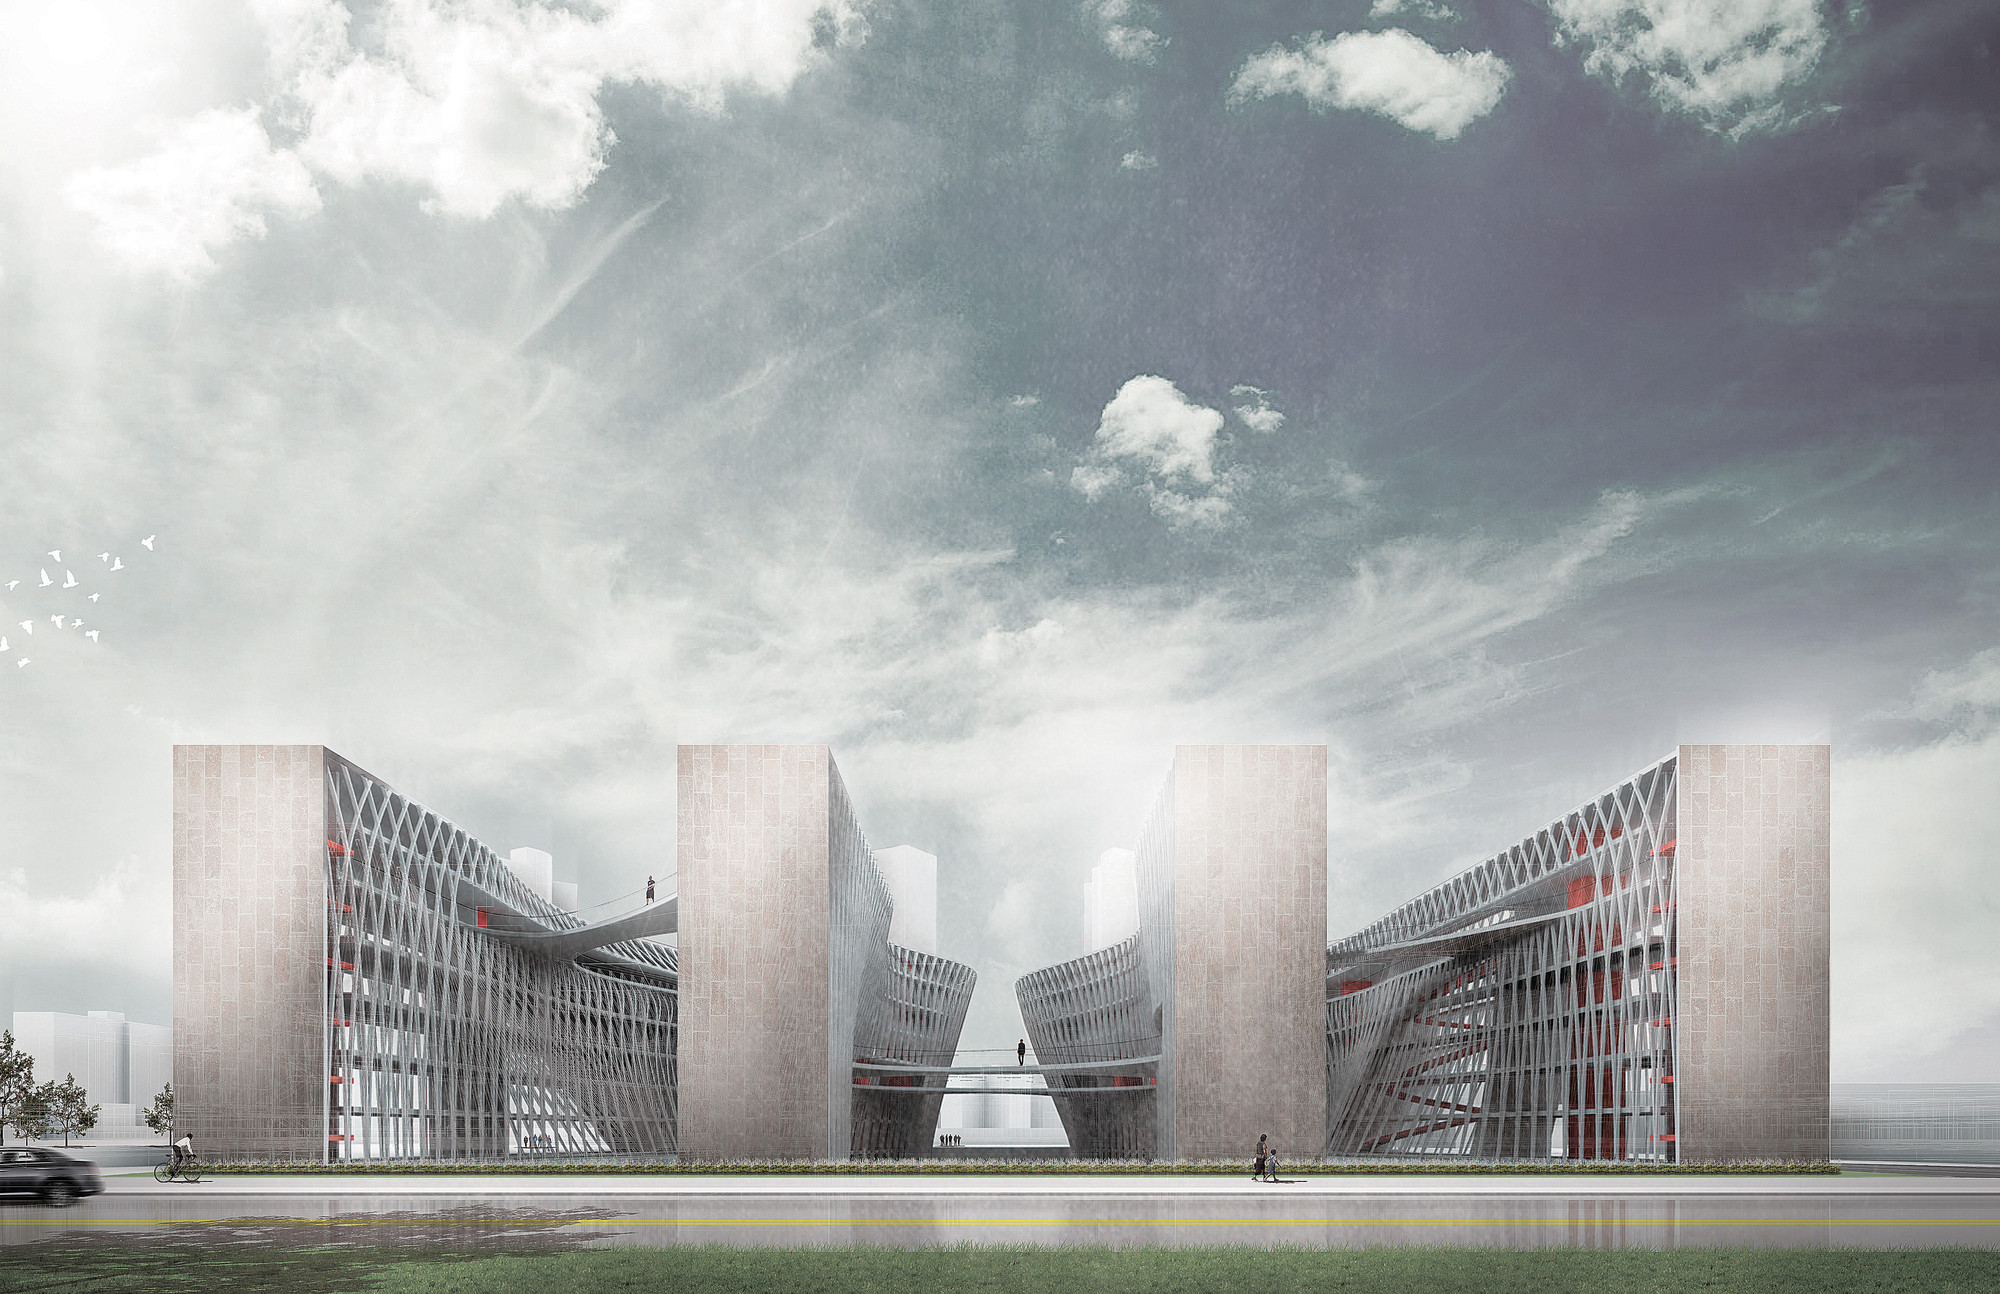 A Radical New Approach to Prison Design, © Glen Santayana